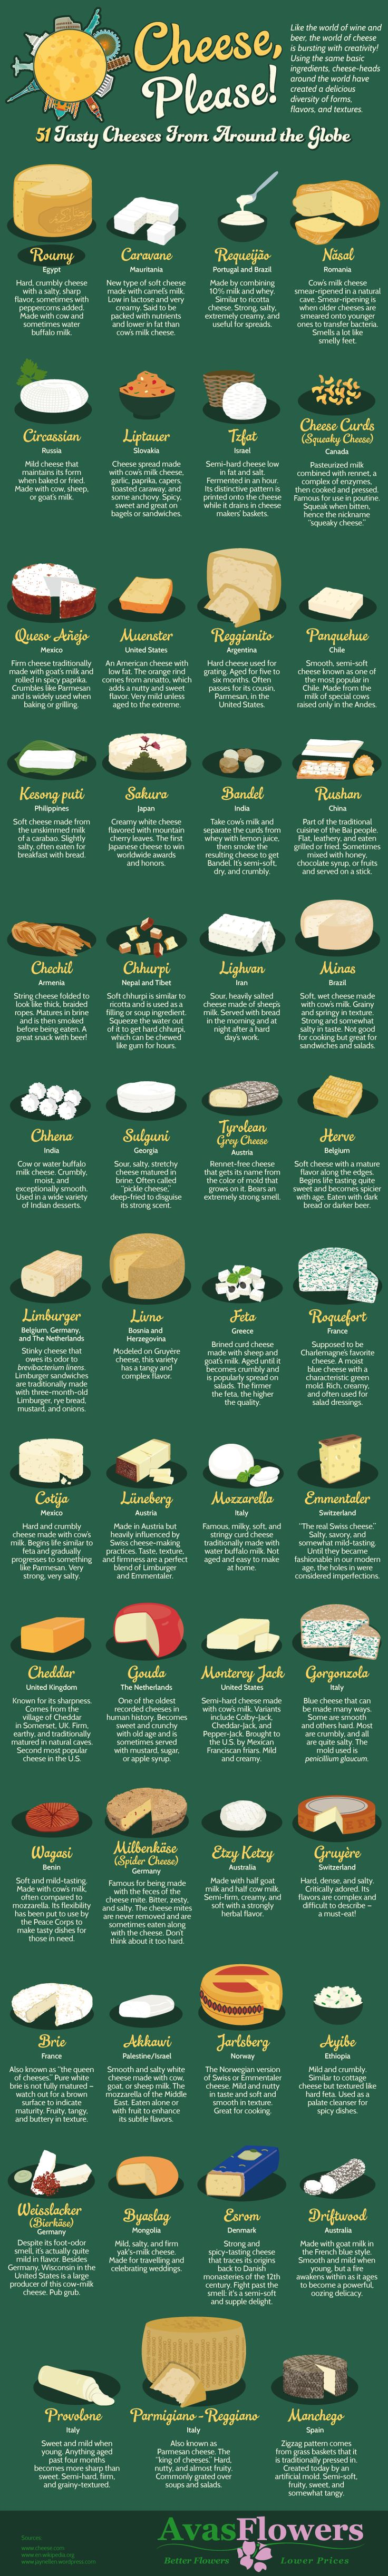 Cheese, Please! 51 Tasty Cheeses From Around the Globe #Infographic #Food #Travel